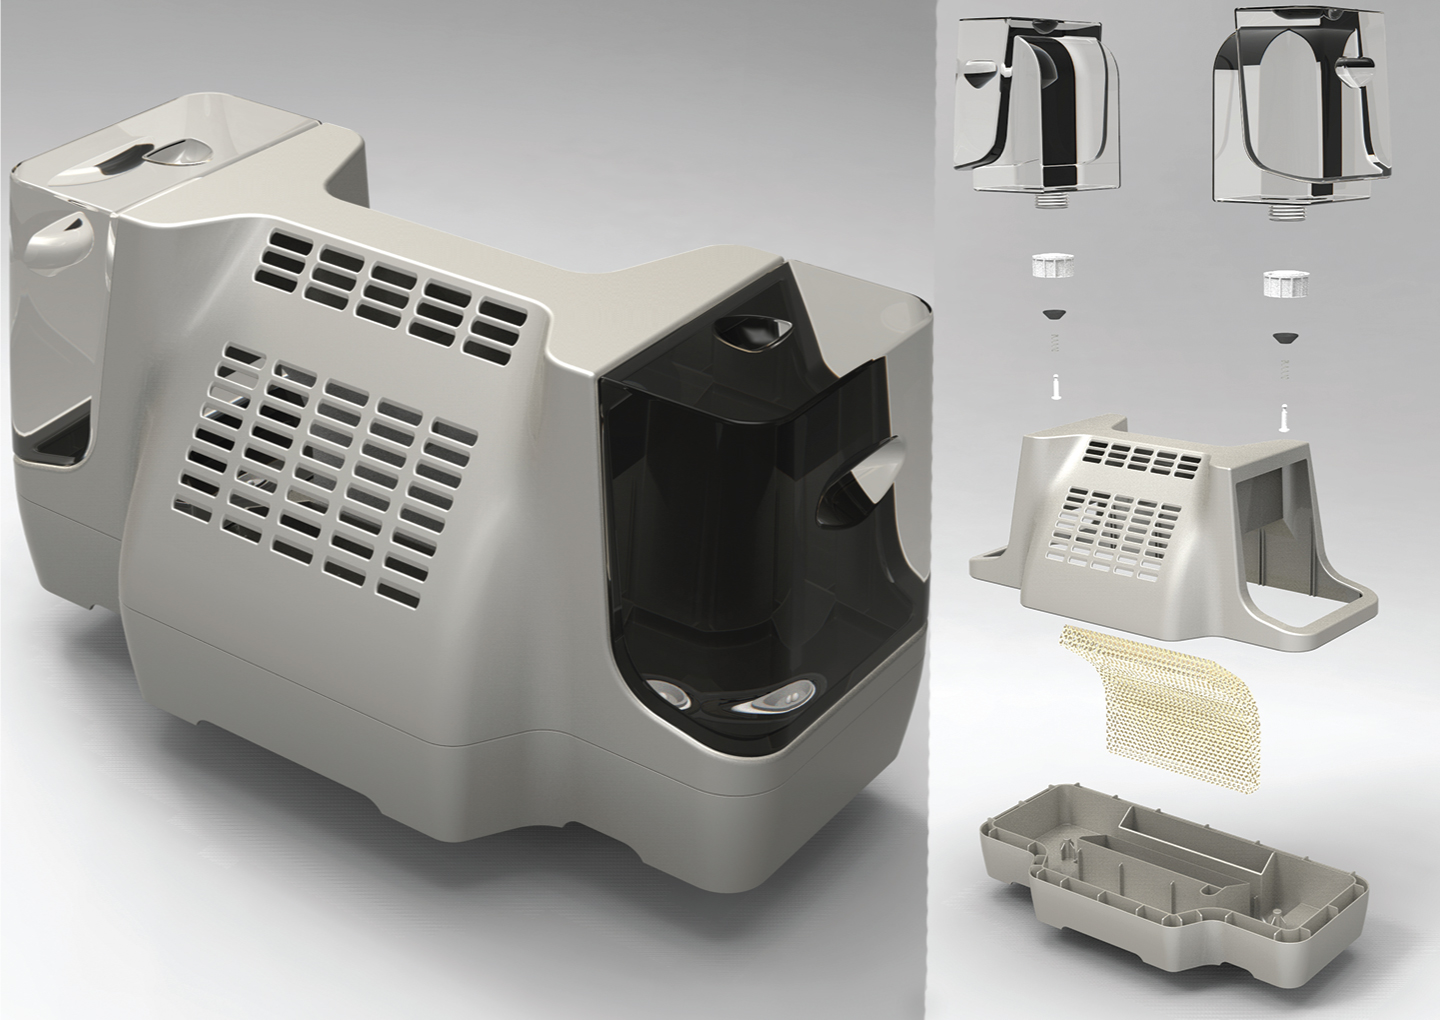 Rumidifier home comforts inc design 1st product for Product design inc